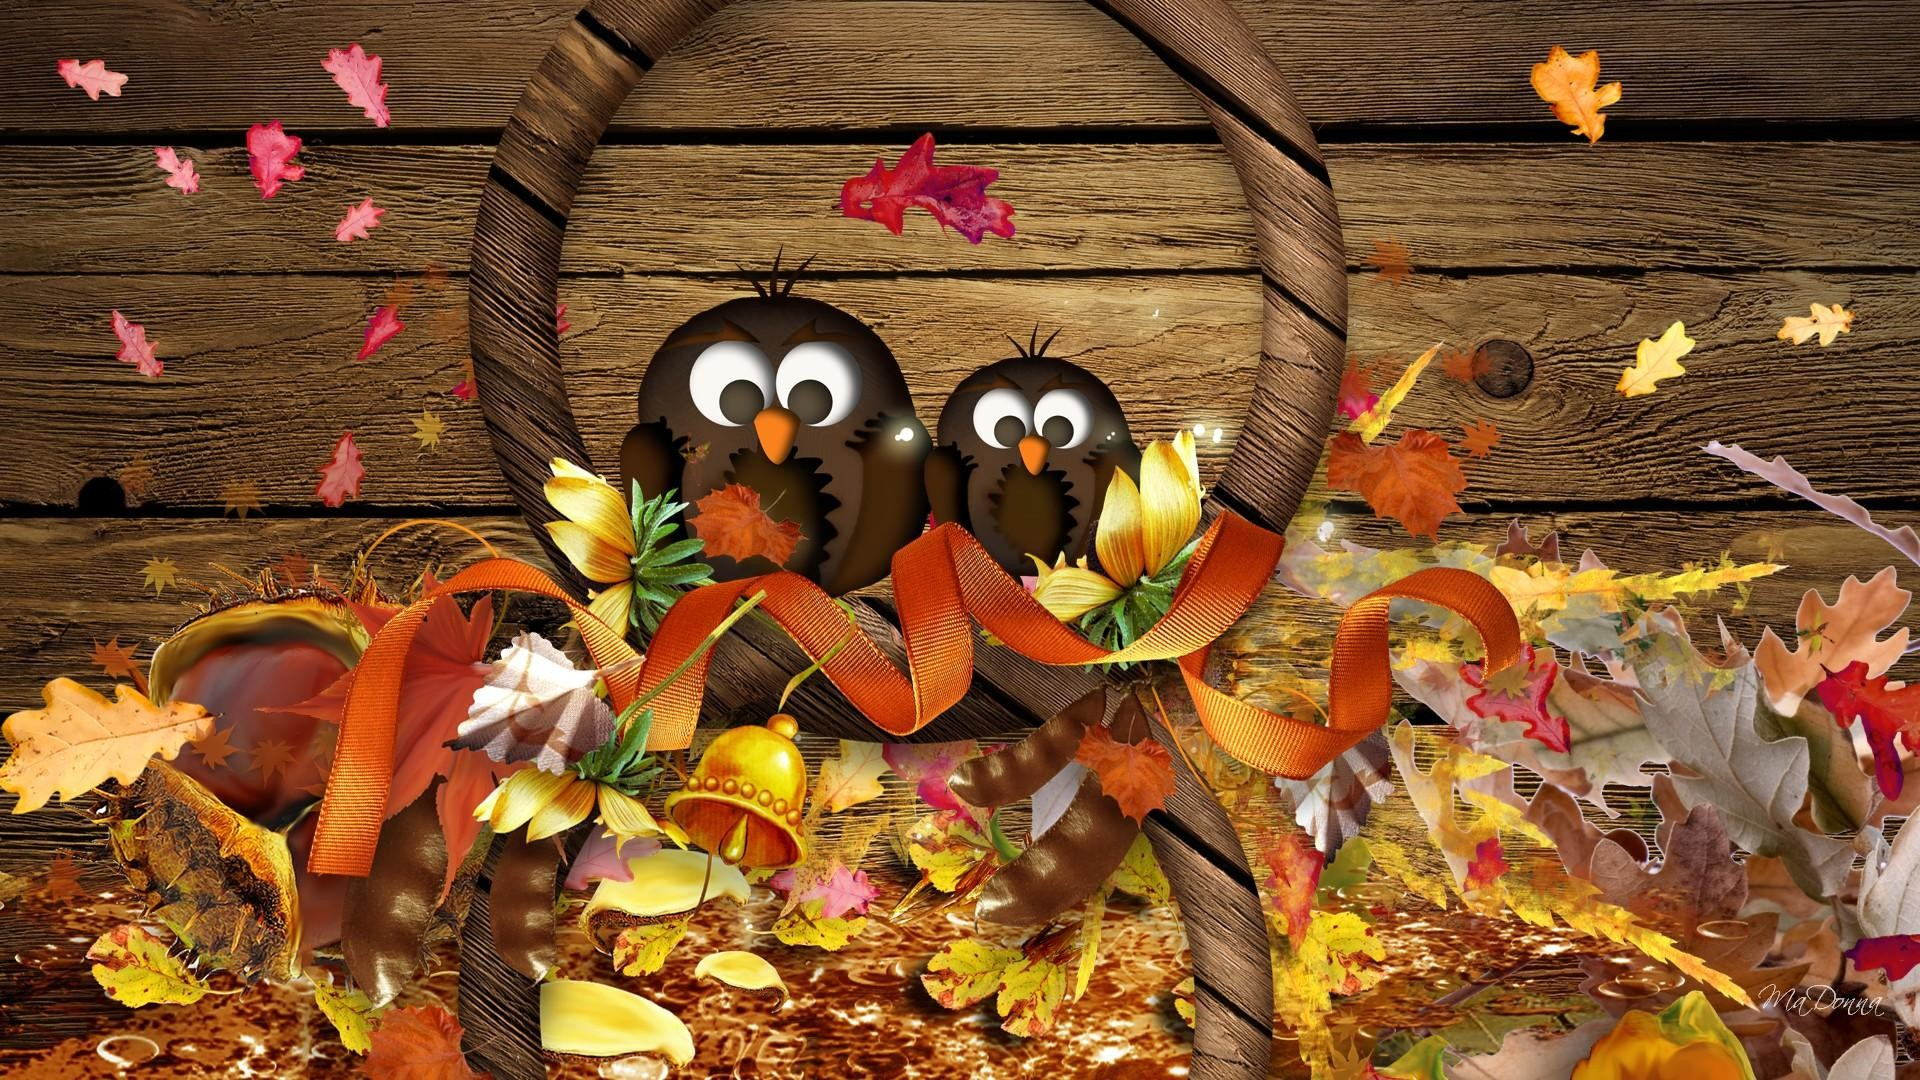 1920x1080 Desktop Wallpapers Thanksgiving Holiday Wallpaper Thanksgiving Screensavers  And Wallpapers Wallpapers)